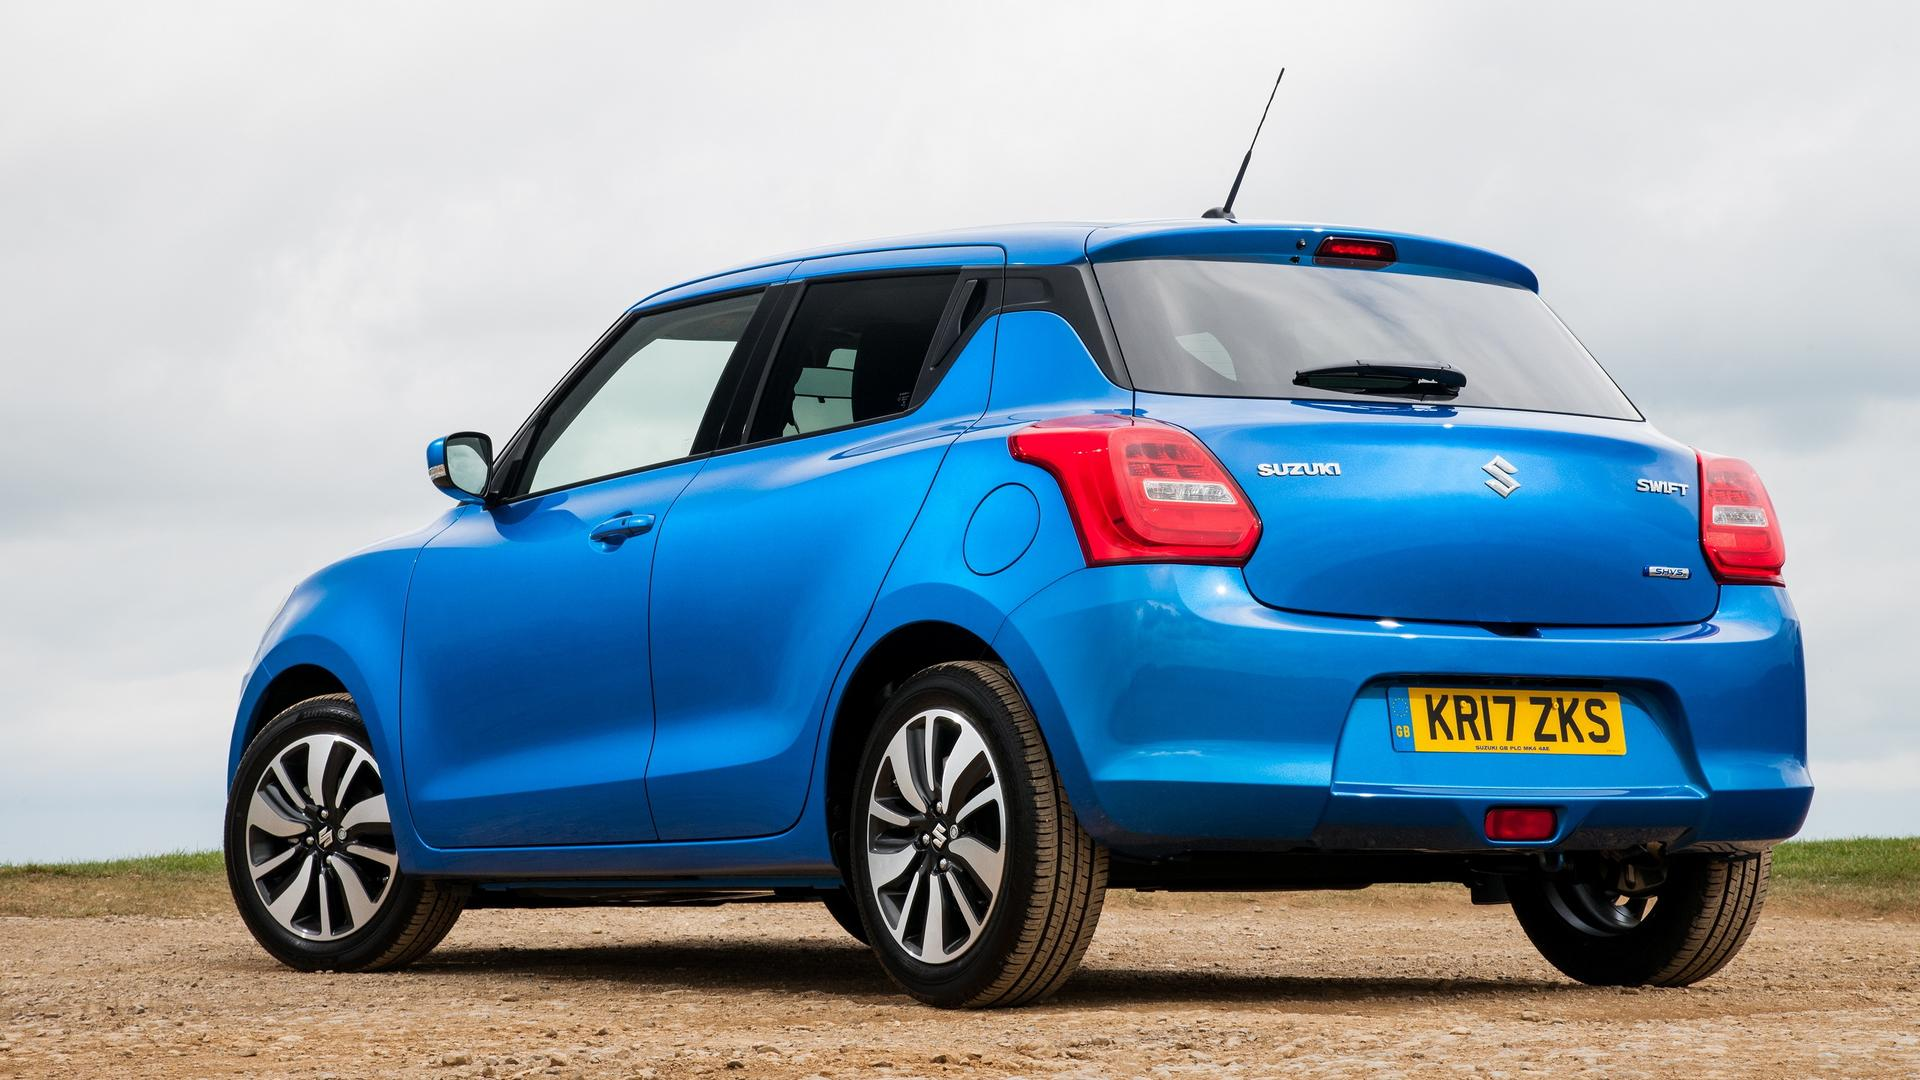 2017 Suzuki Swift Review: Simple But Clever